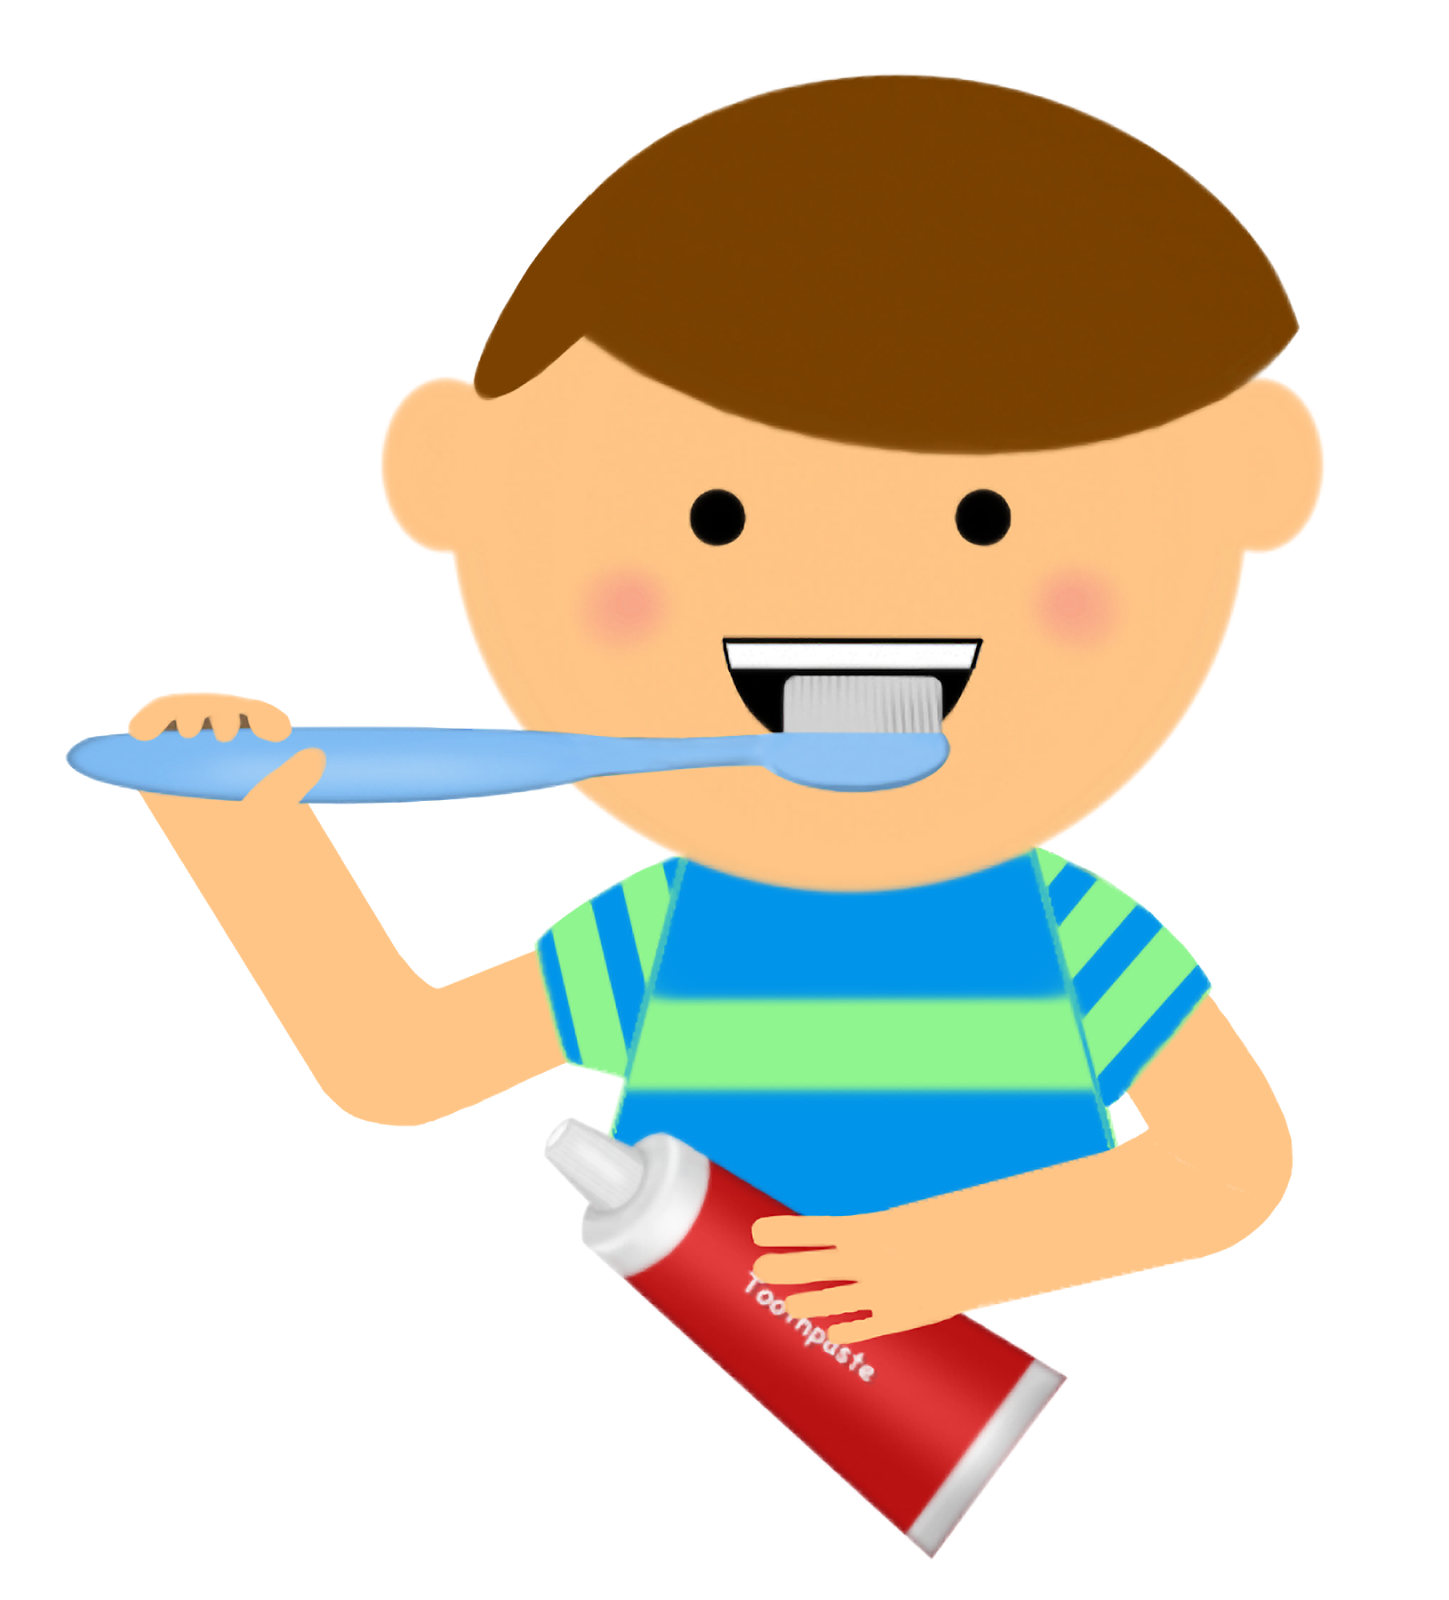 Girl teeth download best. Free clipart pics of little boy brushing hair